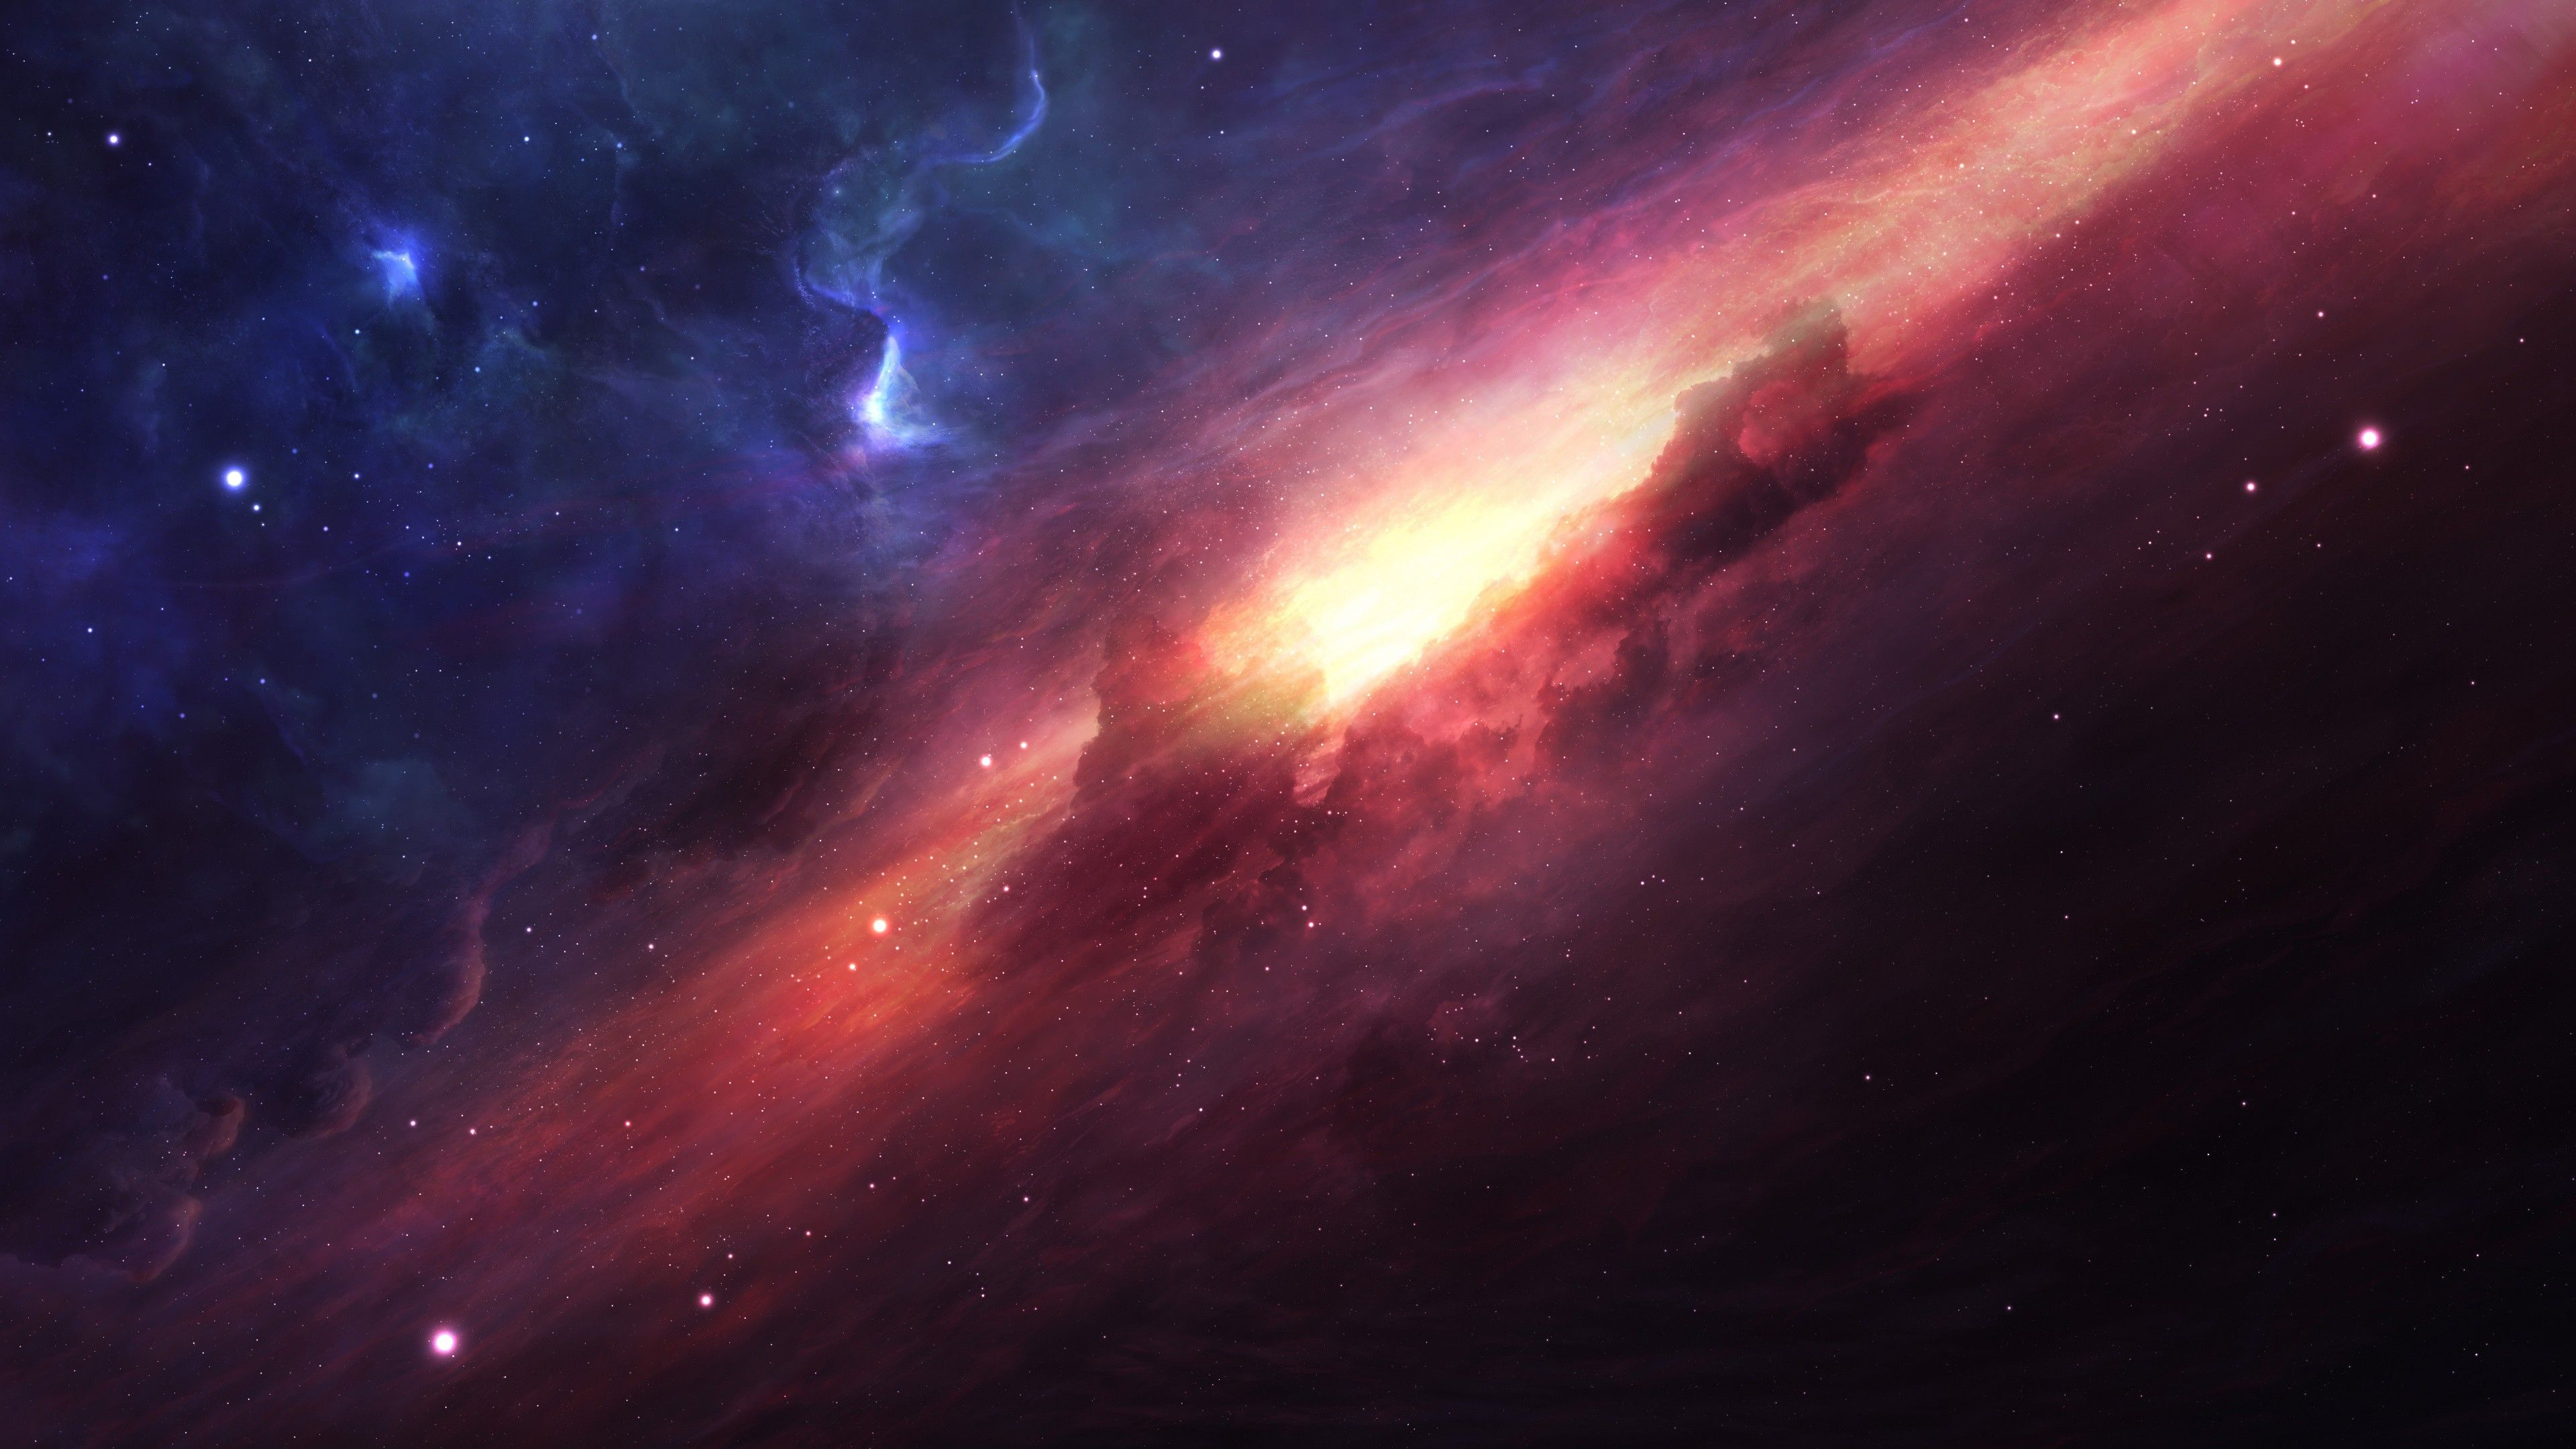 Wallpaper 4k Space Art 4k 4k Wallpapers Artist Wallpapers